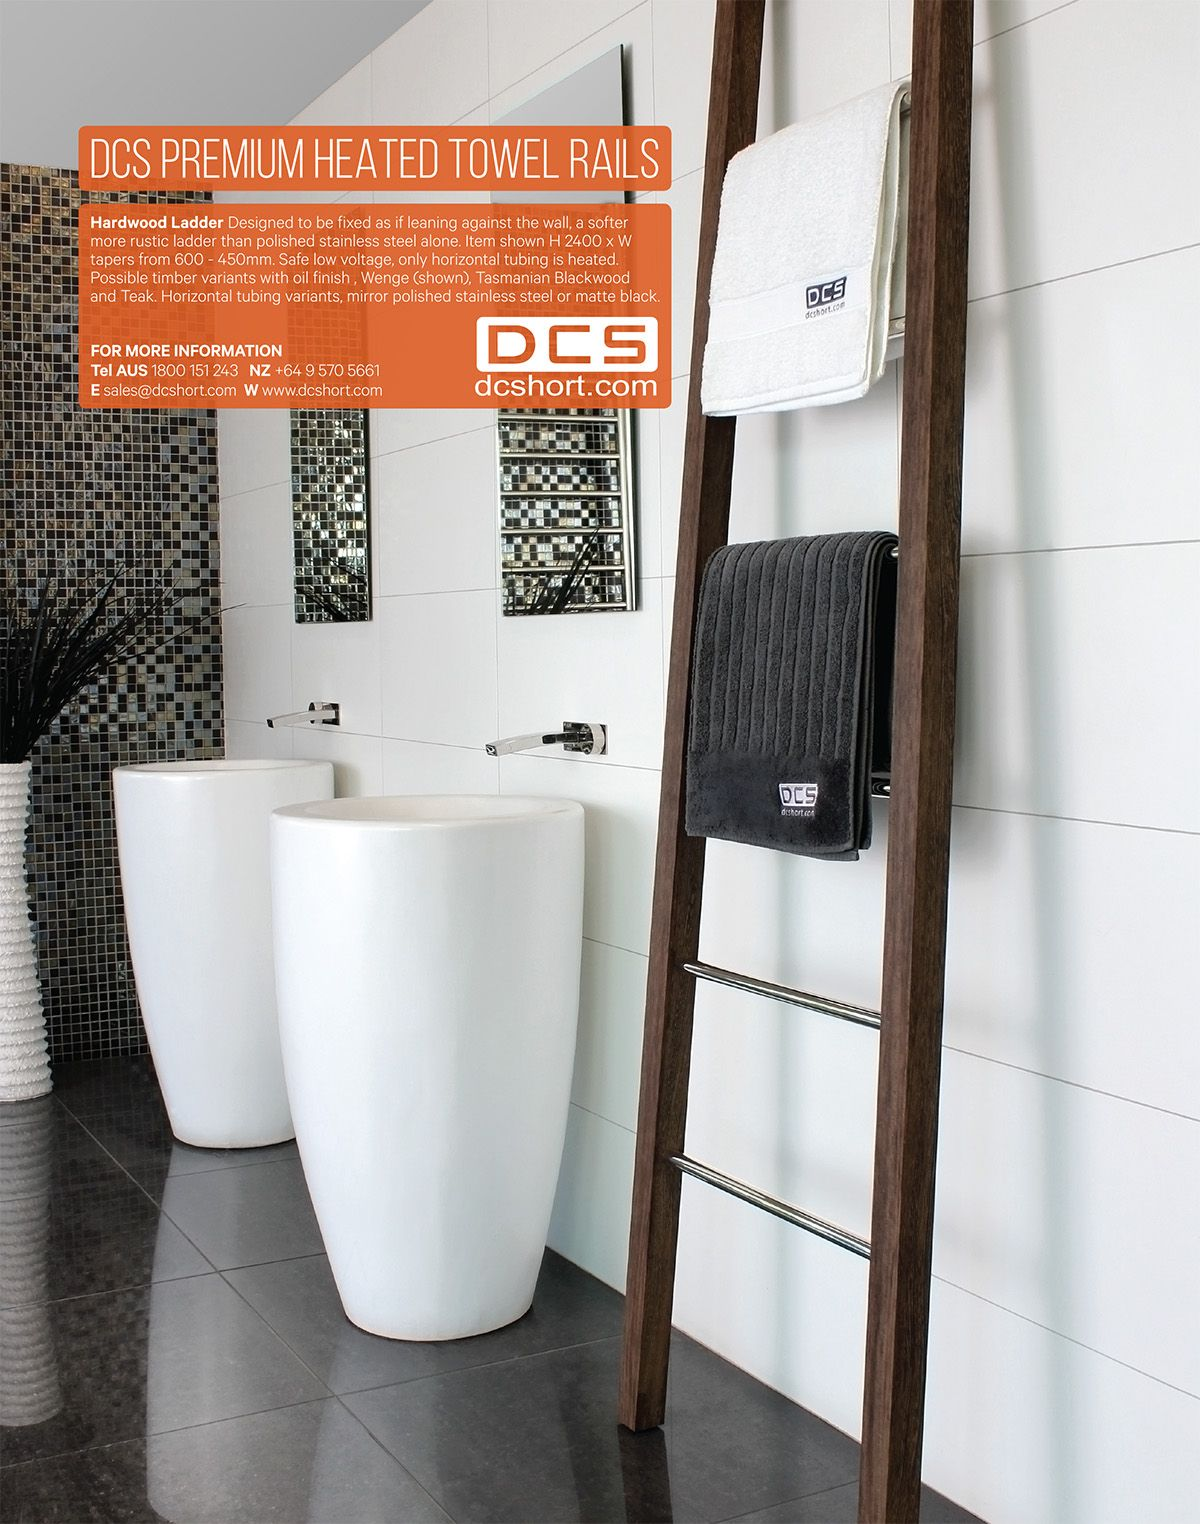 Grand Designs, Sep 2015 - DCS Heated Towel Rails. | DCS Magazine ads ...